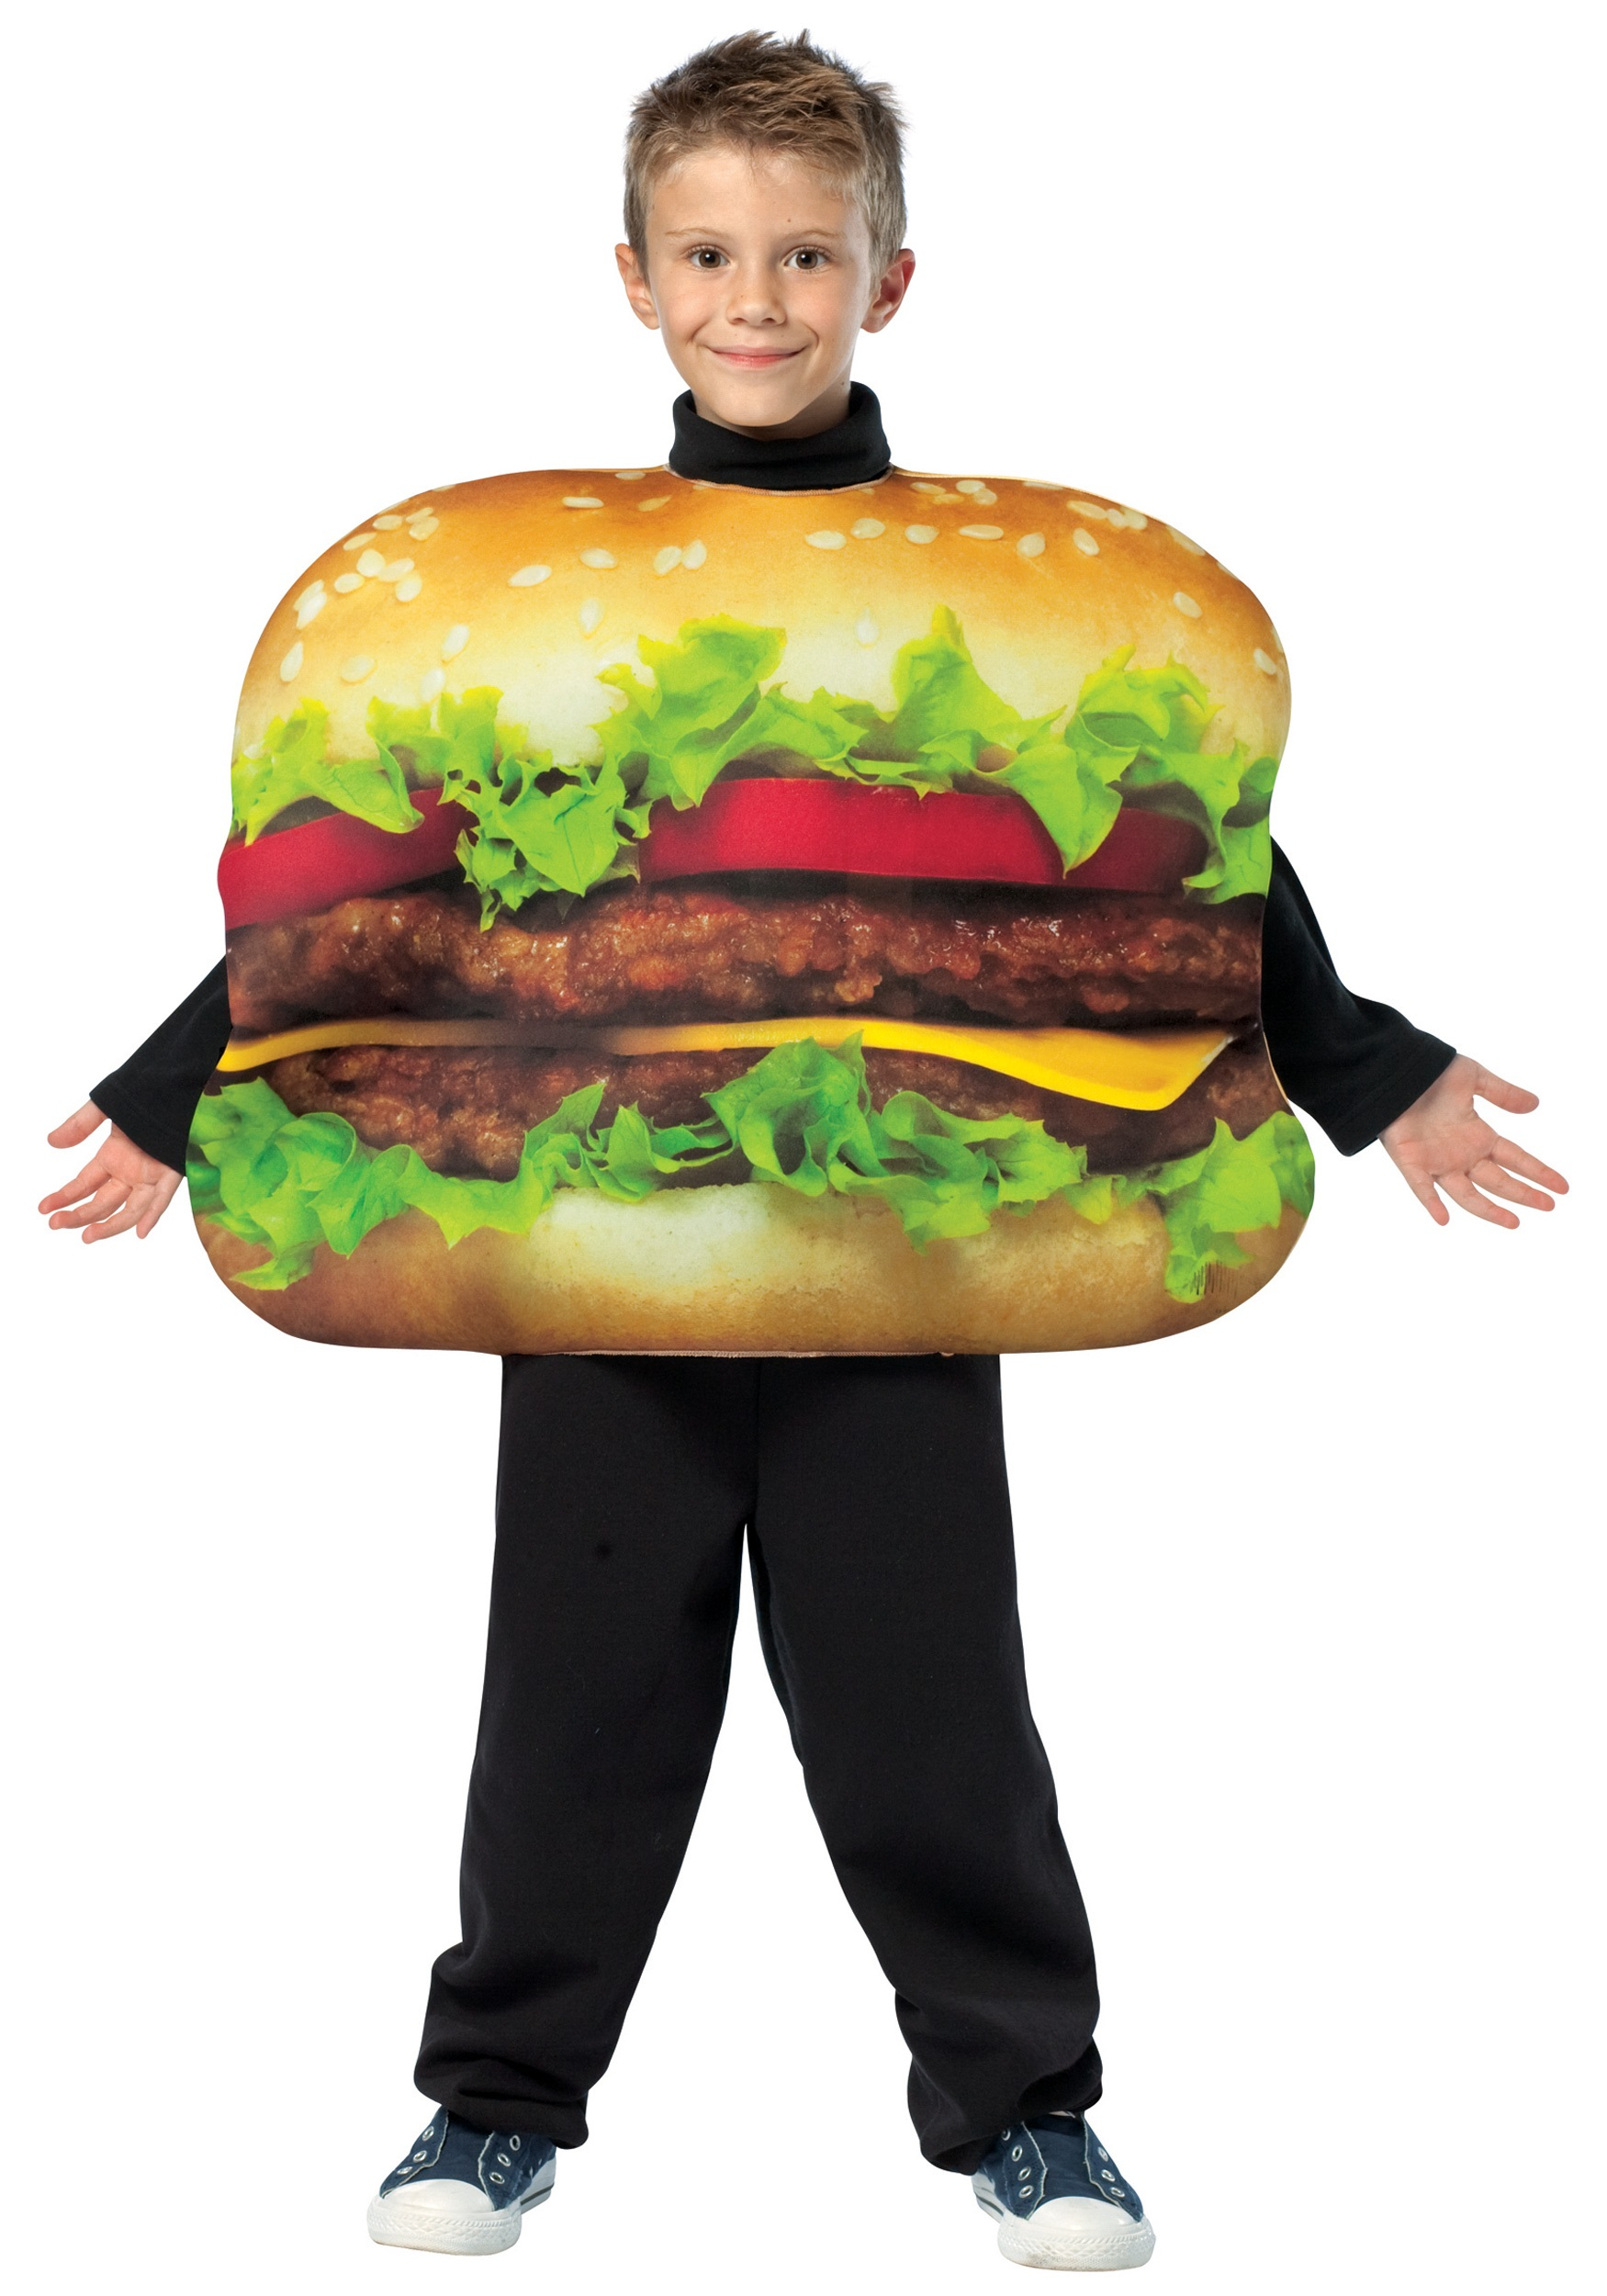 Child cheeseburger costume for Awesome halloween costumes for kids